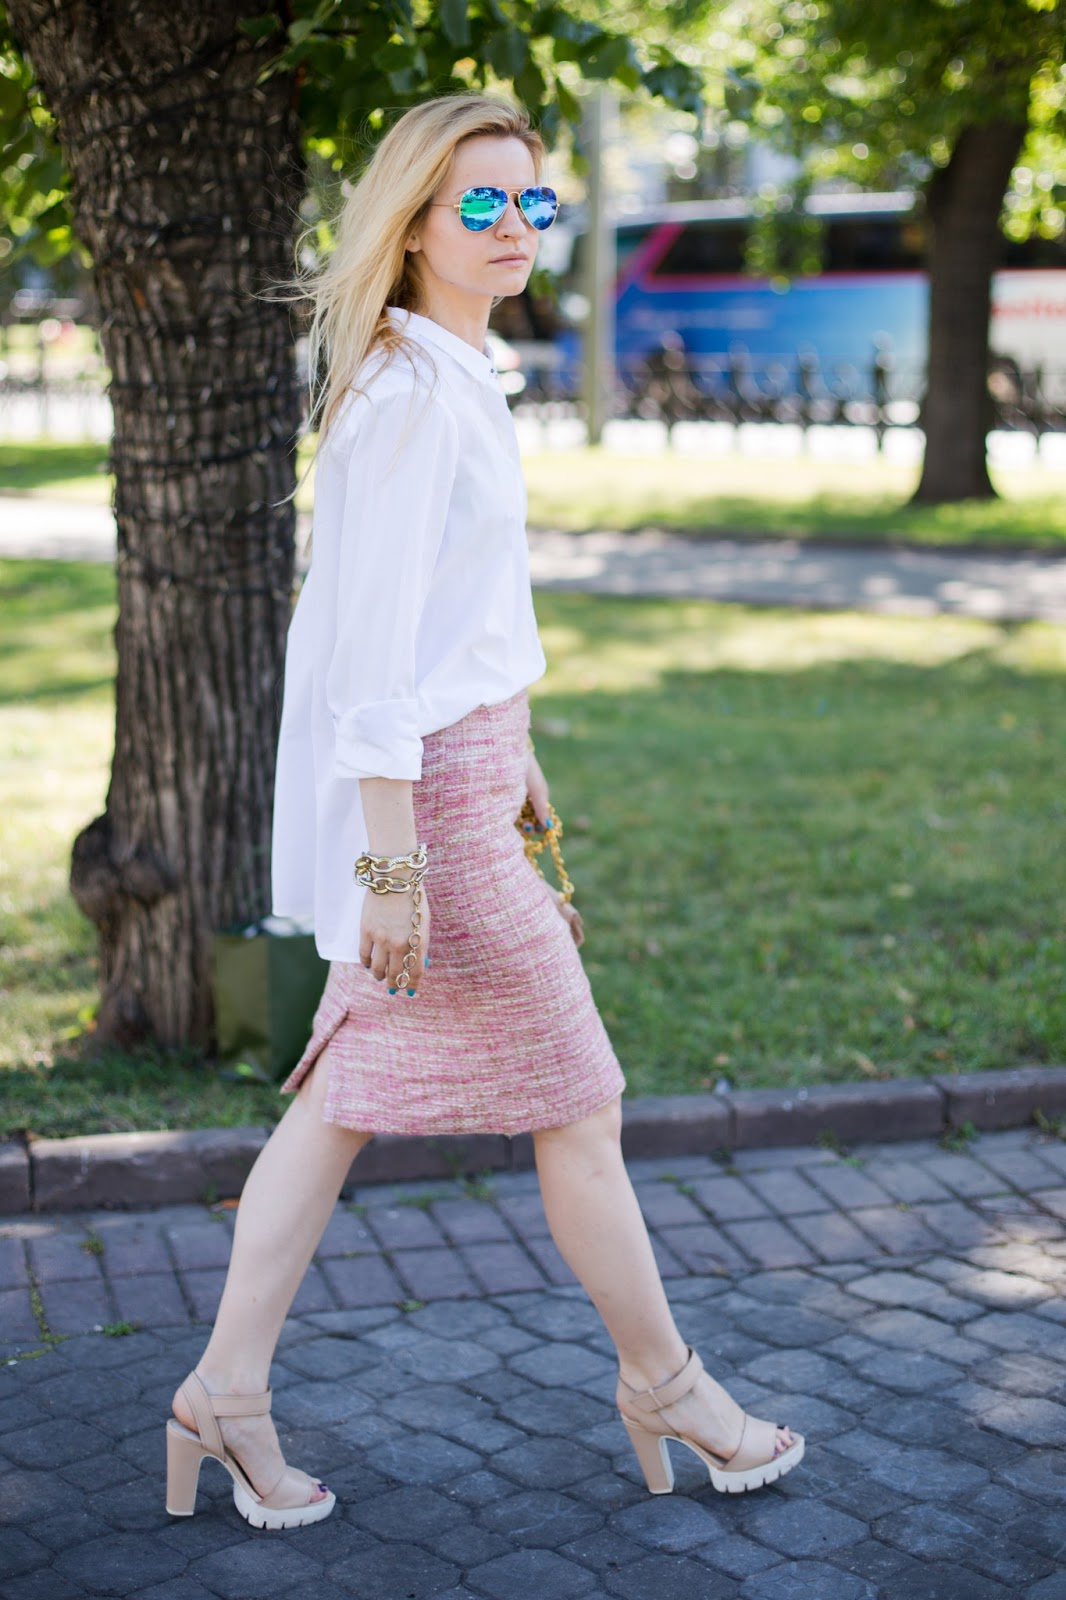 street style 2015 blog, russian fashion bloggers, zara lovers, zara must-haves